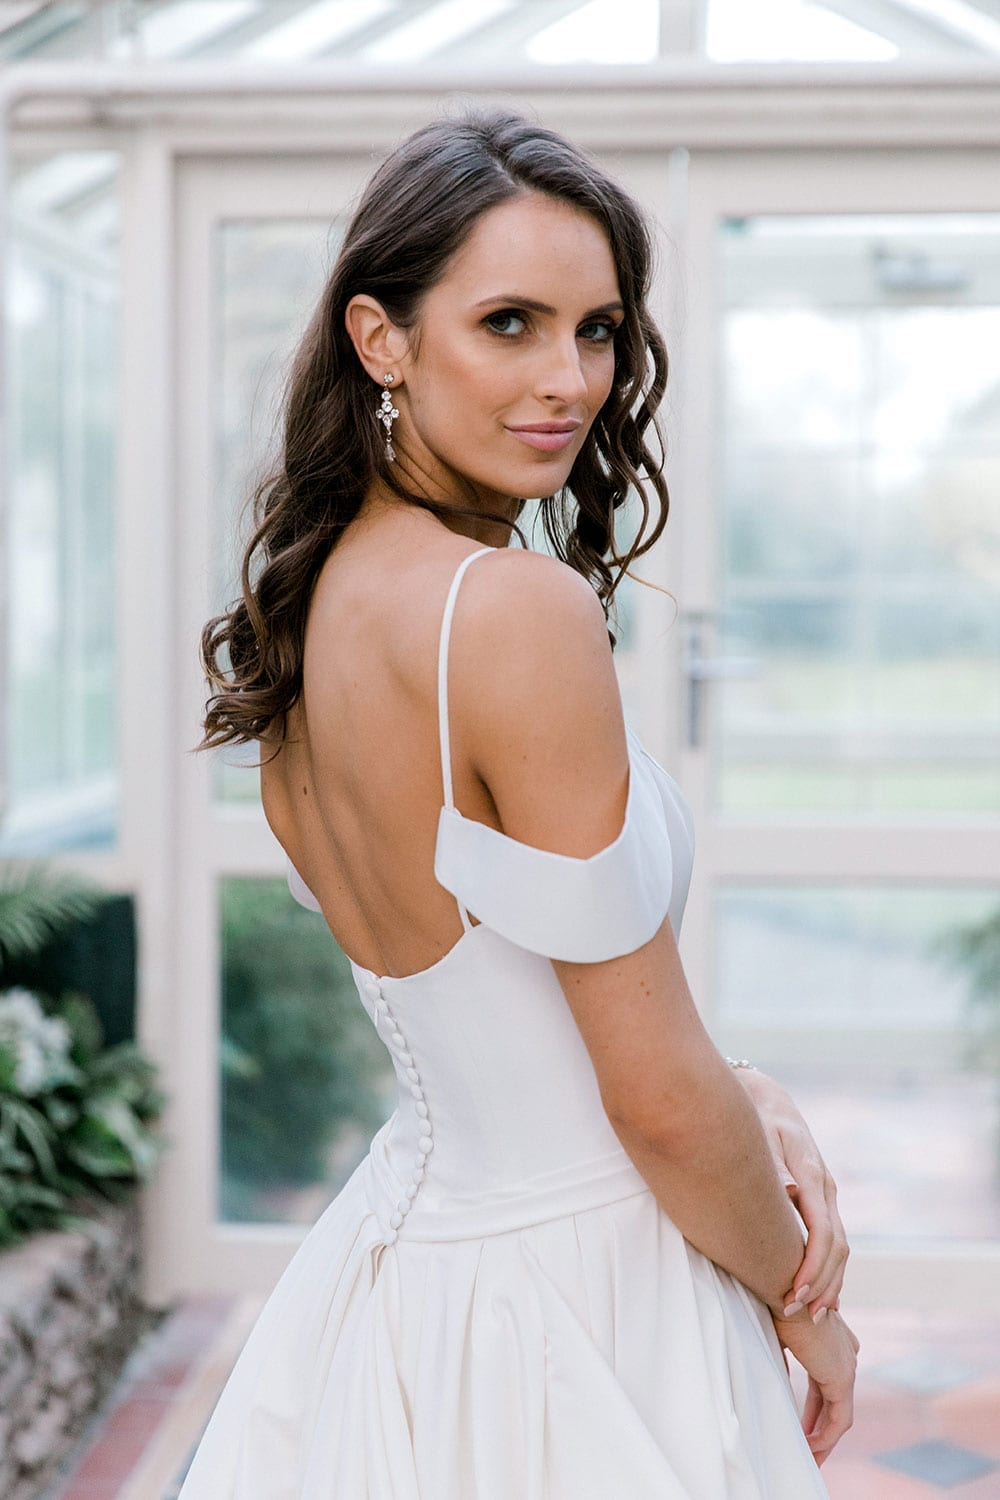 Model wearing Vinka Design Chiara Wedding Dress, a Modern Silk Wedding Gown with Train in a botanical garden greenhouse close up looking over shoulder